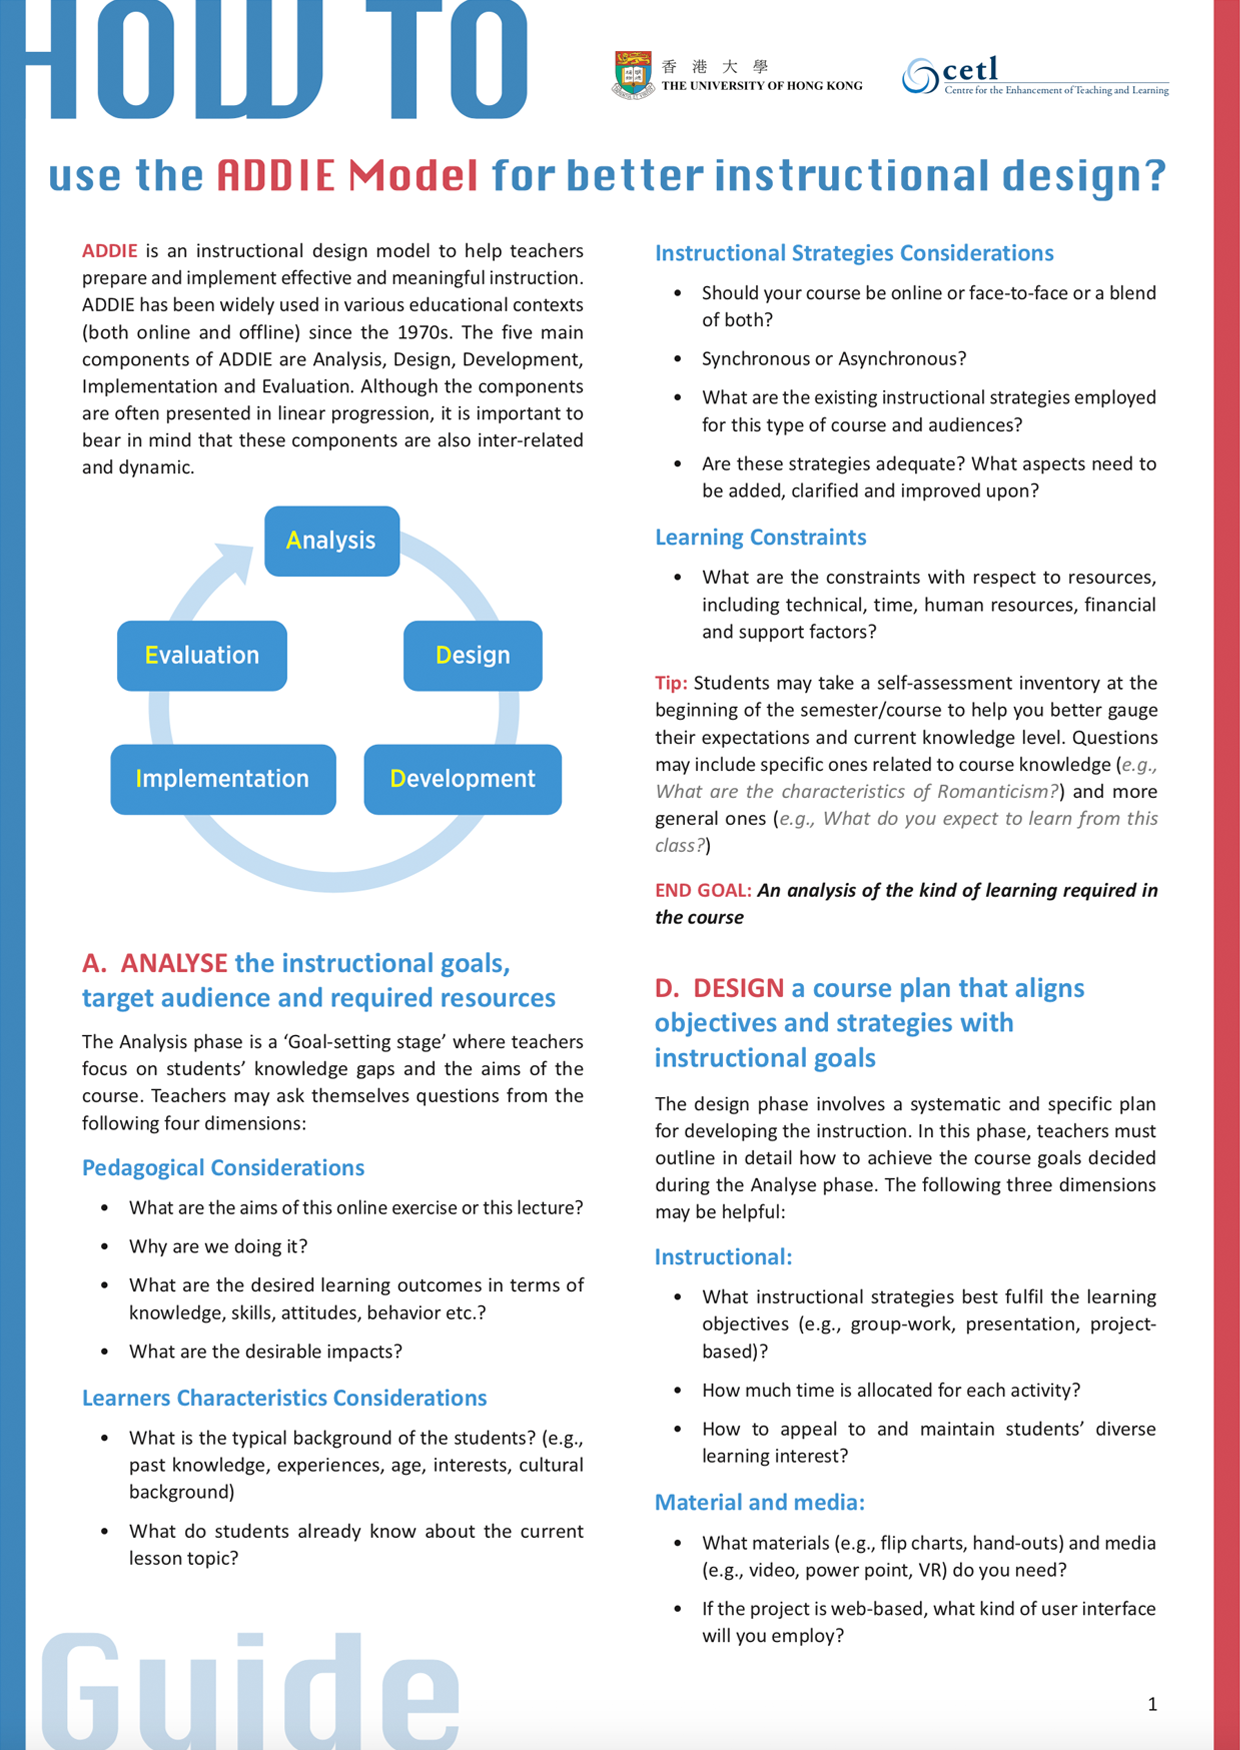 How To Use The Addie Model For Better Instructional Design Technology Enhanced Learning Tel Hku